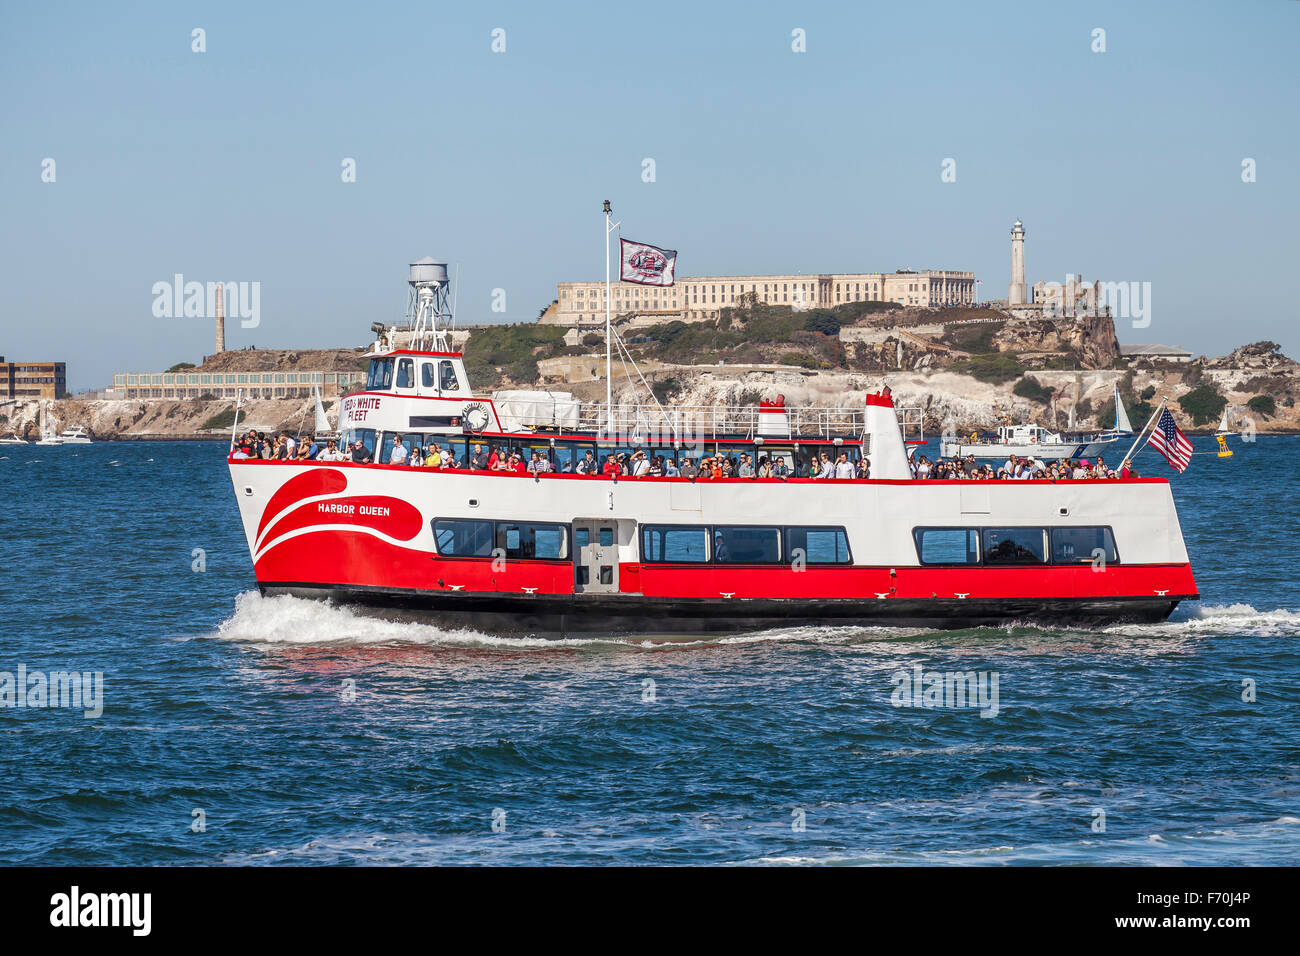 The Red and White ferry transporting passengers across the San Francisco Bay, San Francisco, California, USA - Stock Image